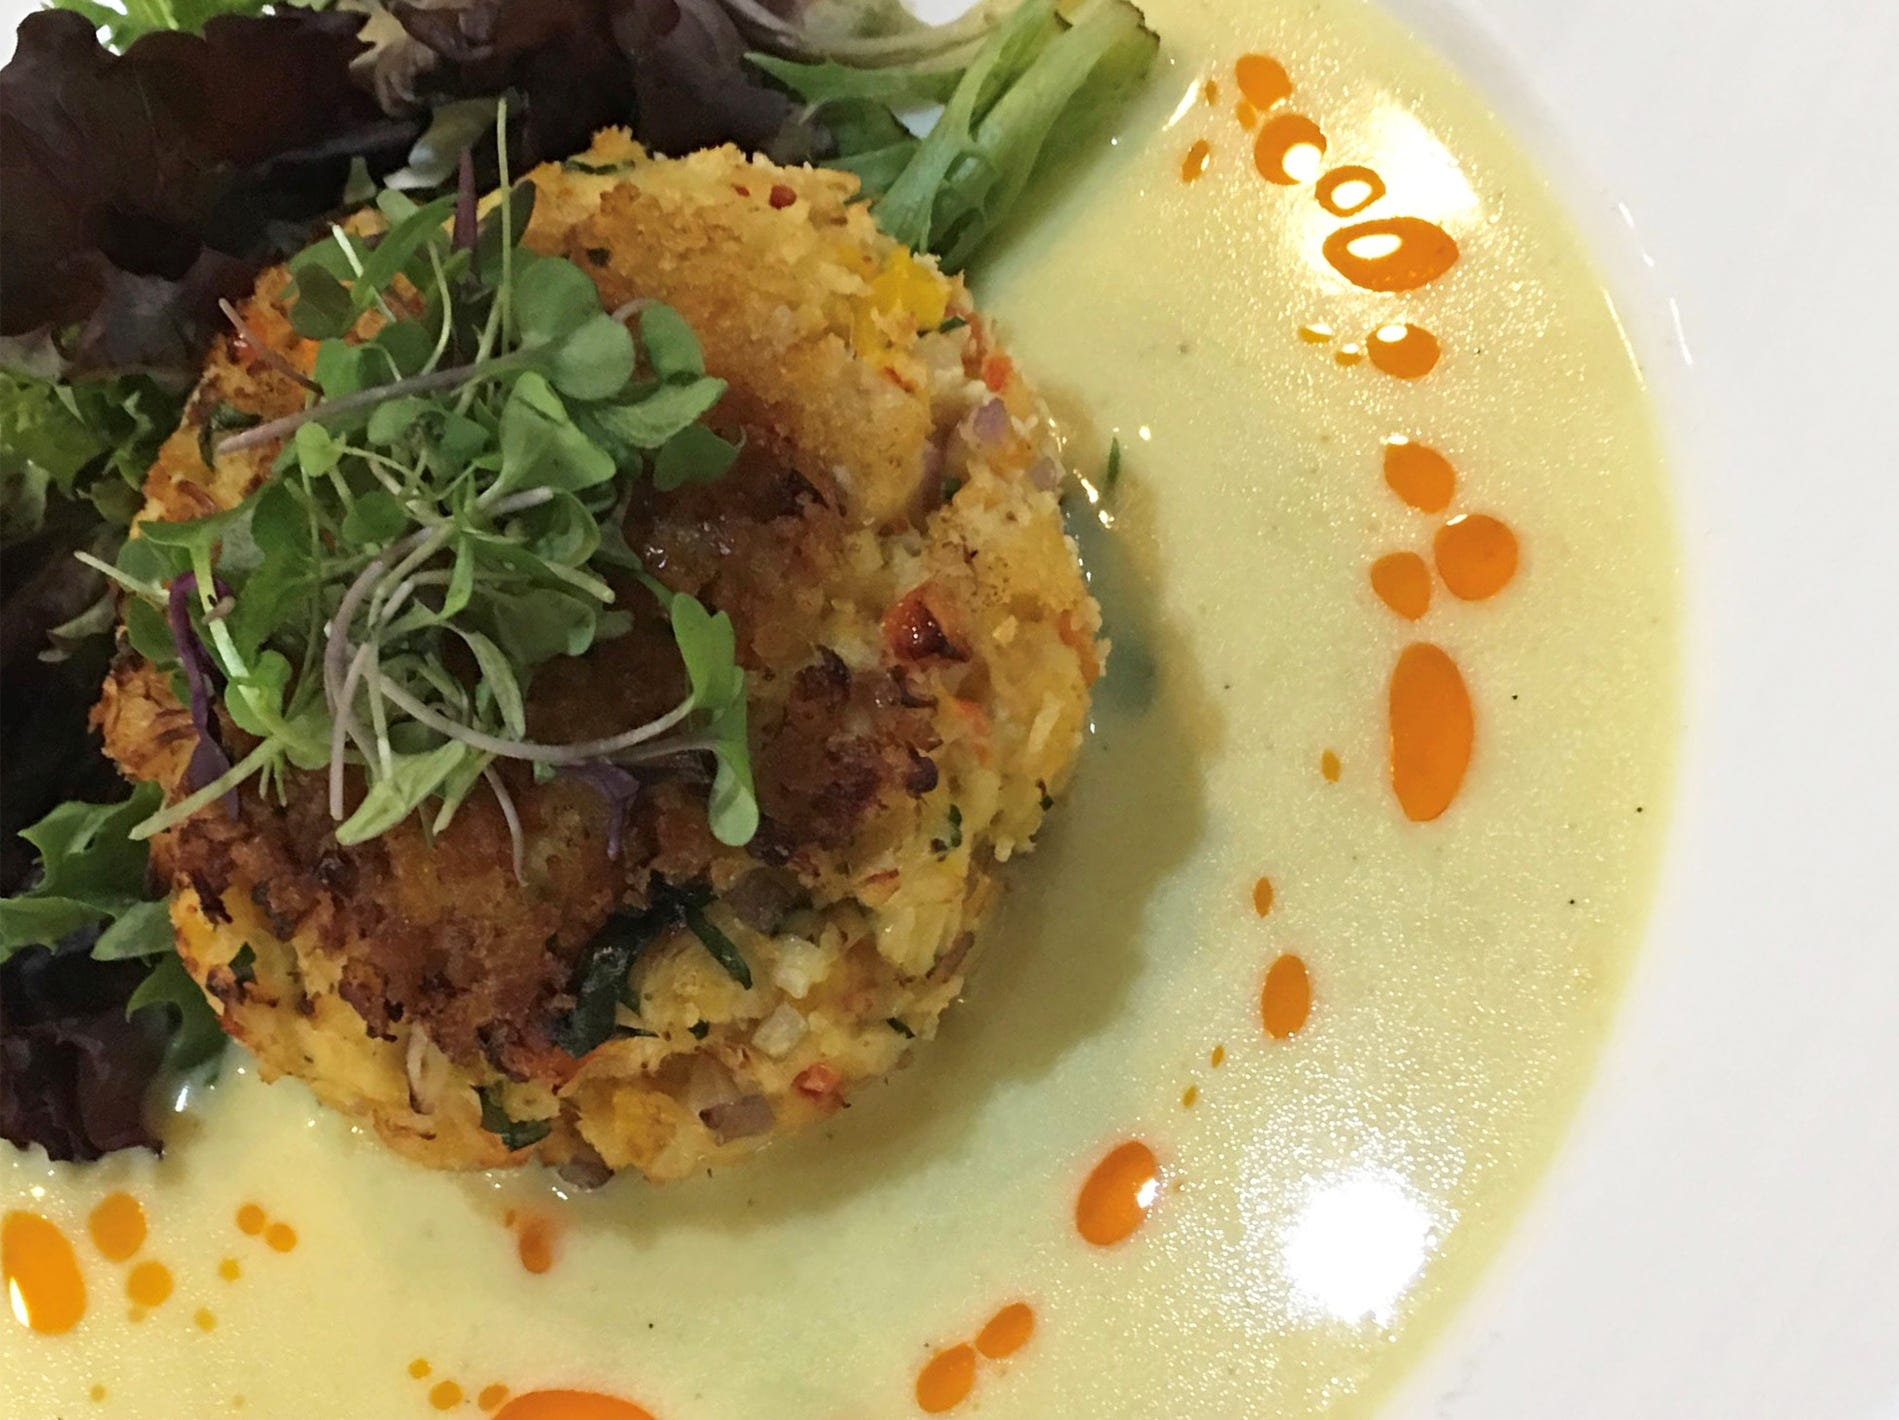 Lobster crab cake at the new Crooked Shillelagh Celtic Kitchen + Drinkery, 3340 U.S. 41 E., in East Naples.